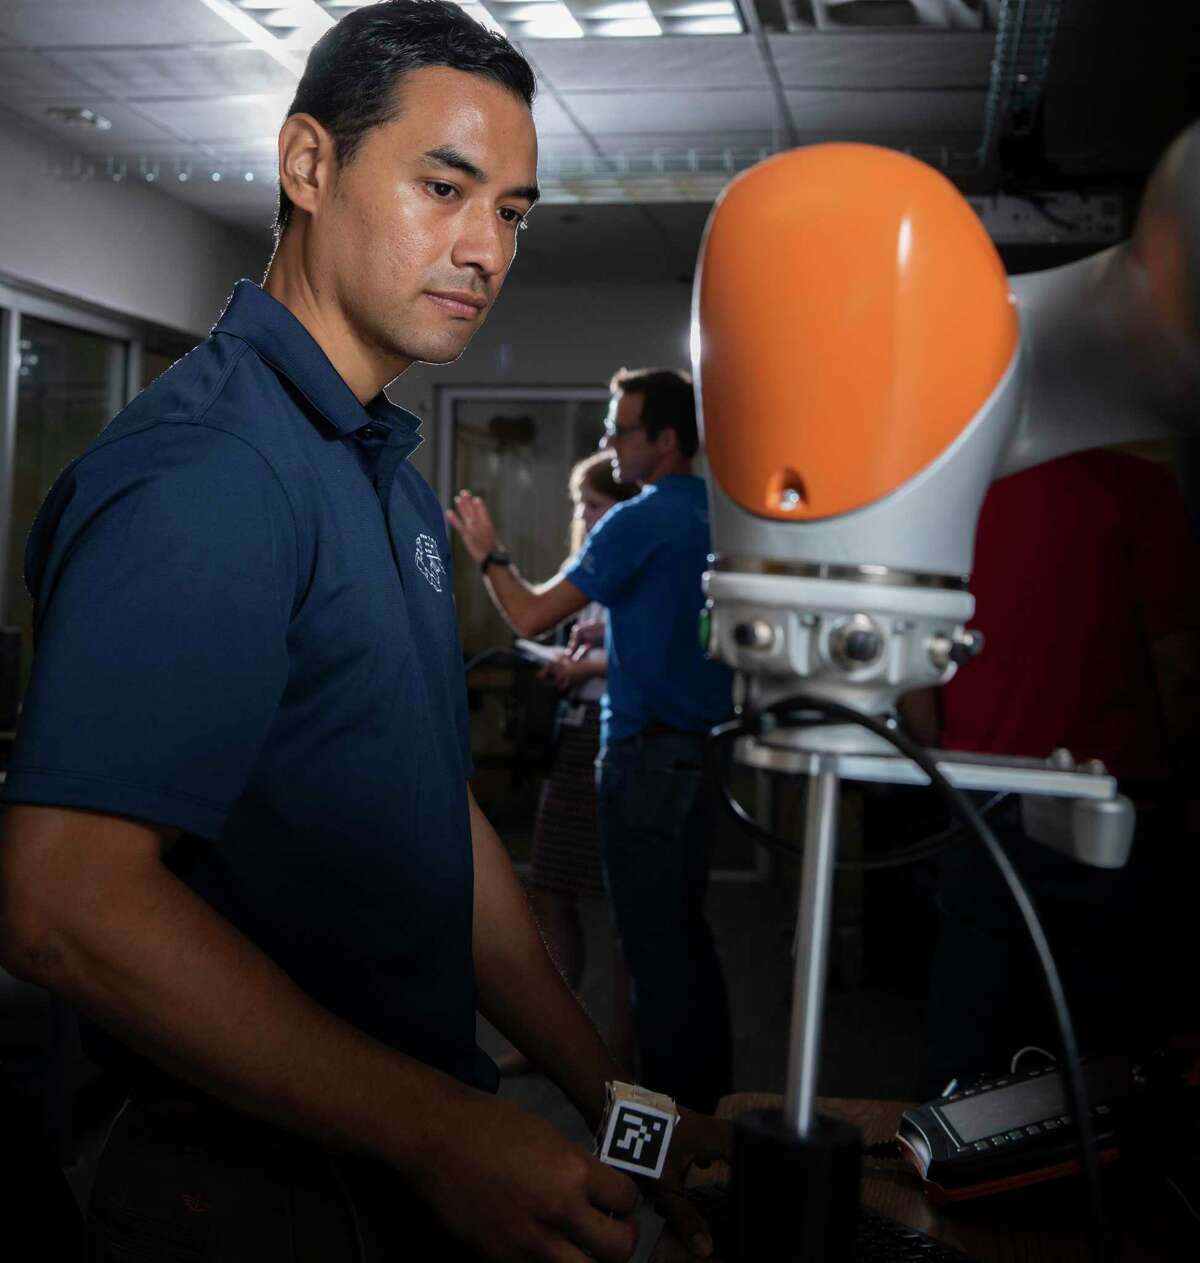 Jorge Nicho a research engineer at controls a